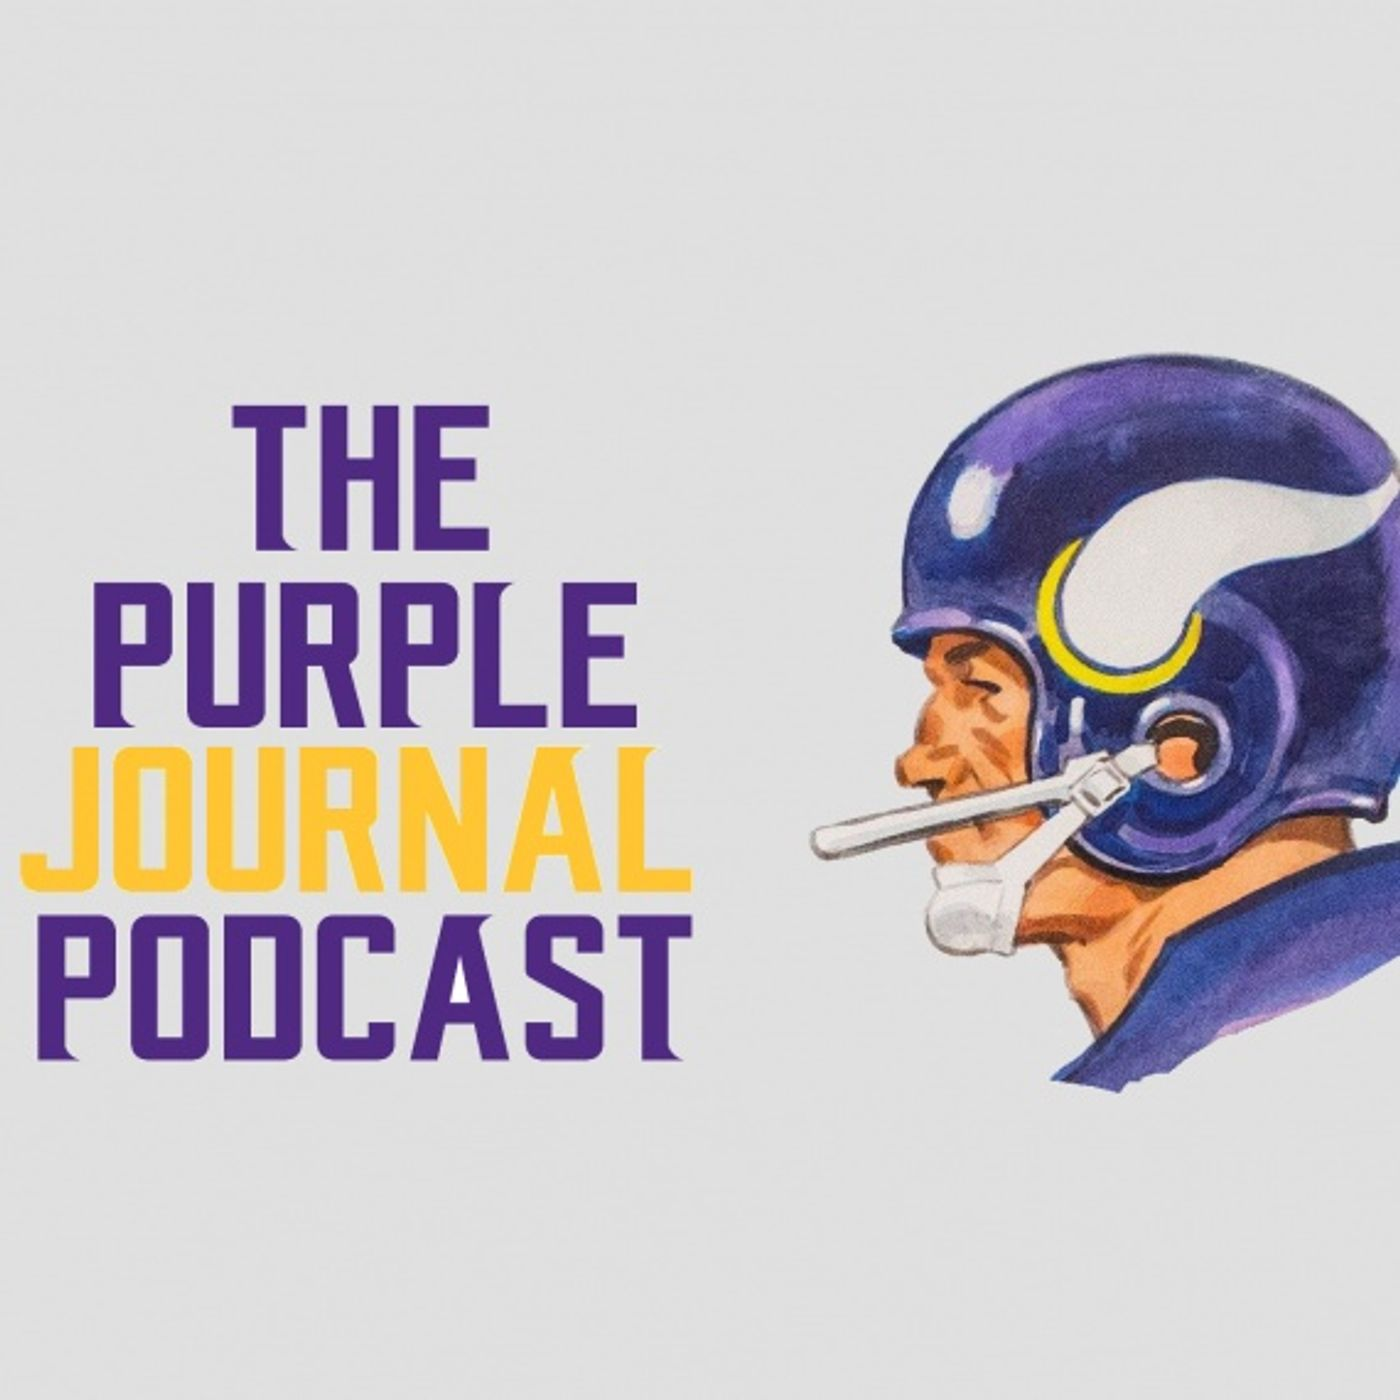 purpleJOURNAL Podcast - Looking Forward to Training Camp, Back at Mini-Camp Edition